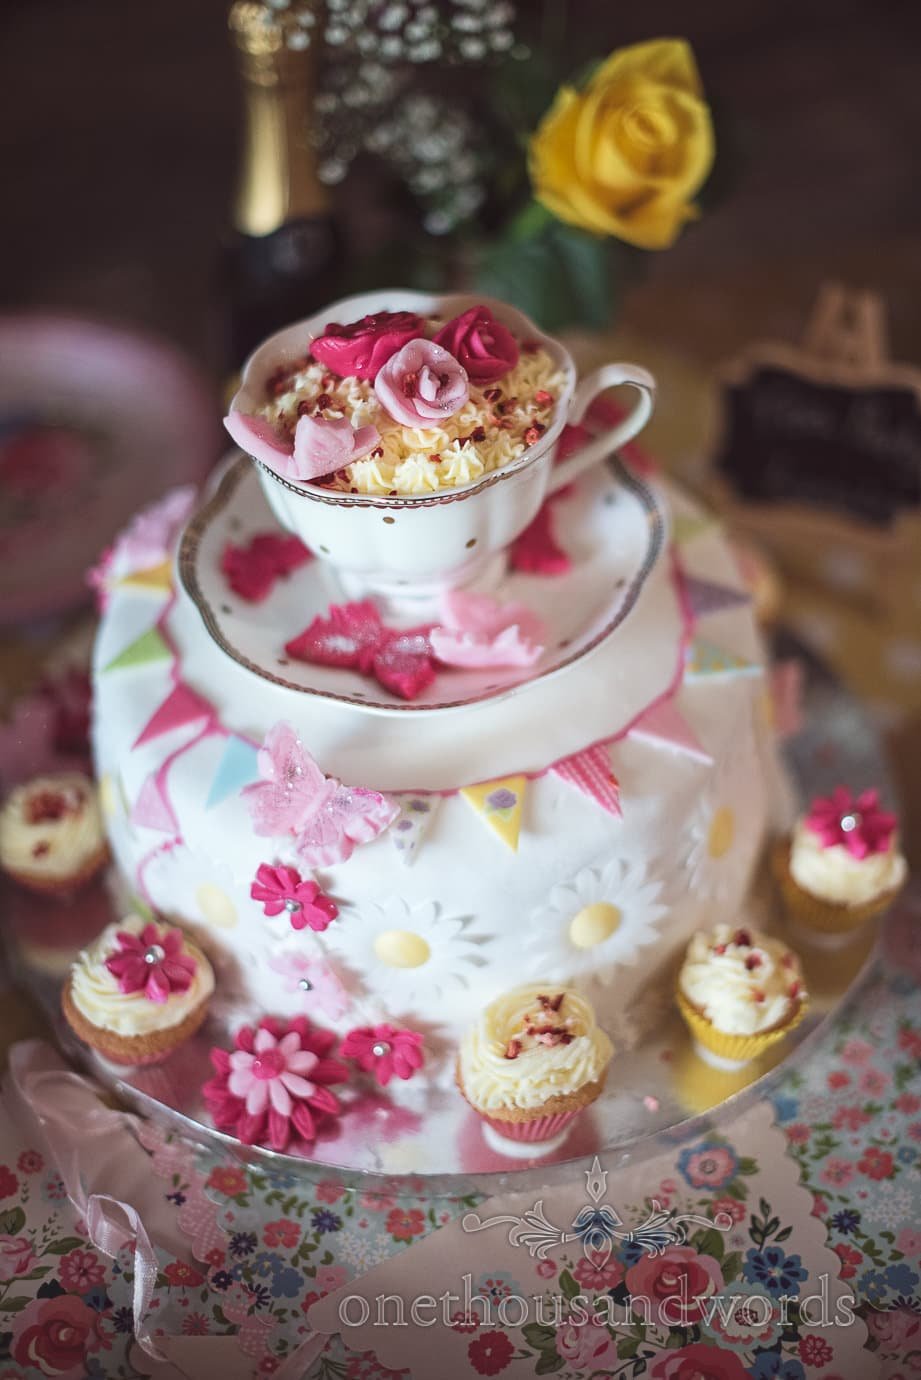 Wedding cake decorated with cup cakes, bunting and a tea cup and saucer